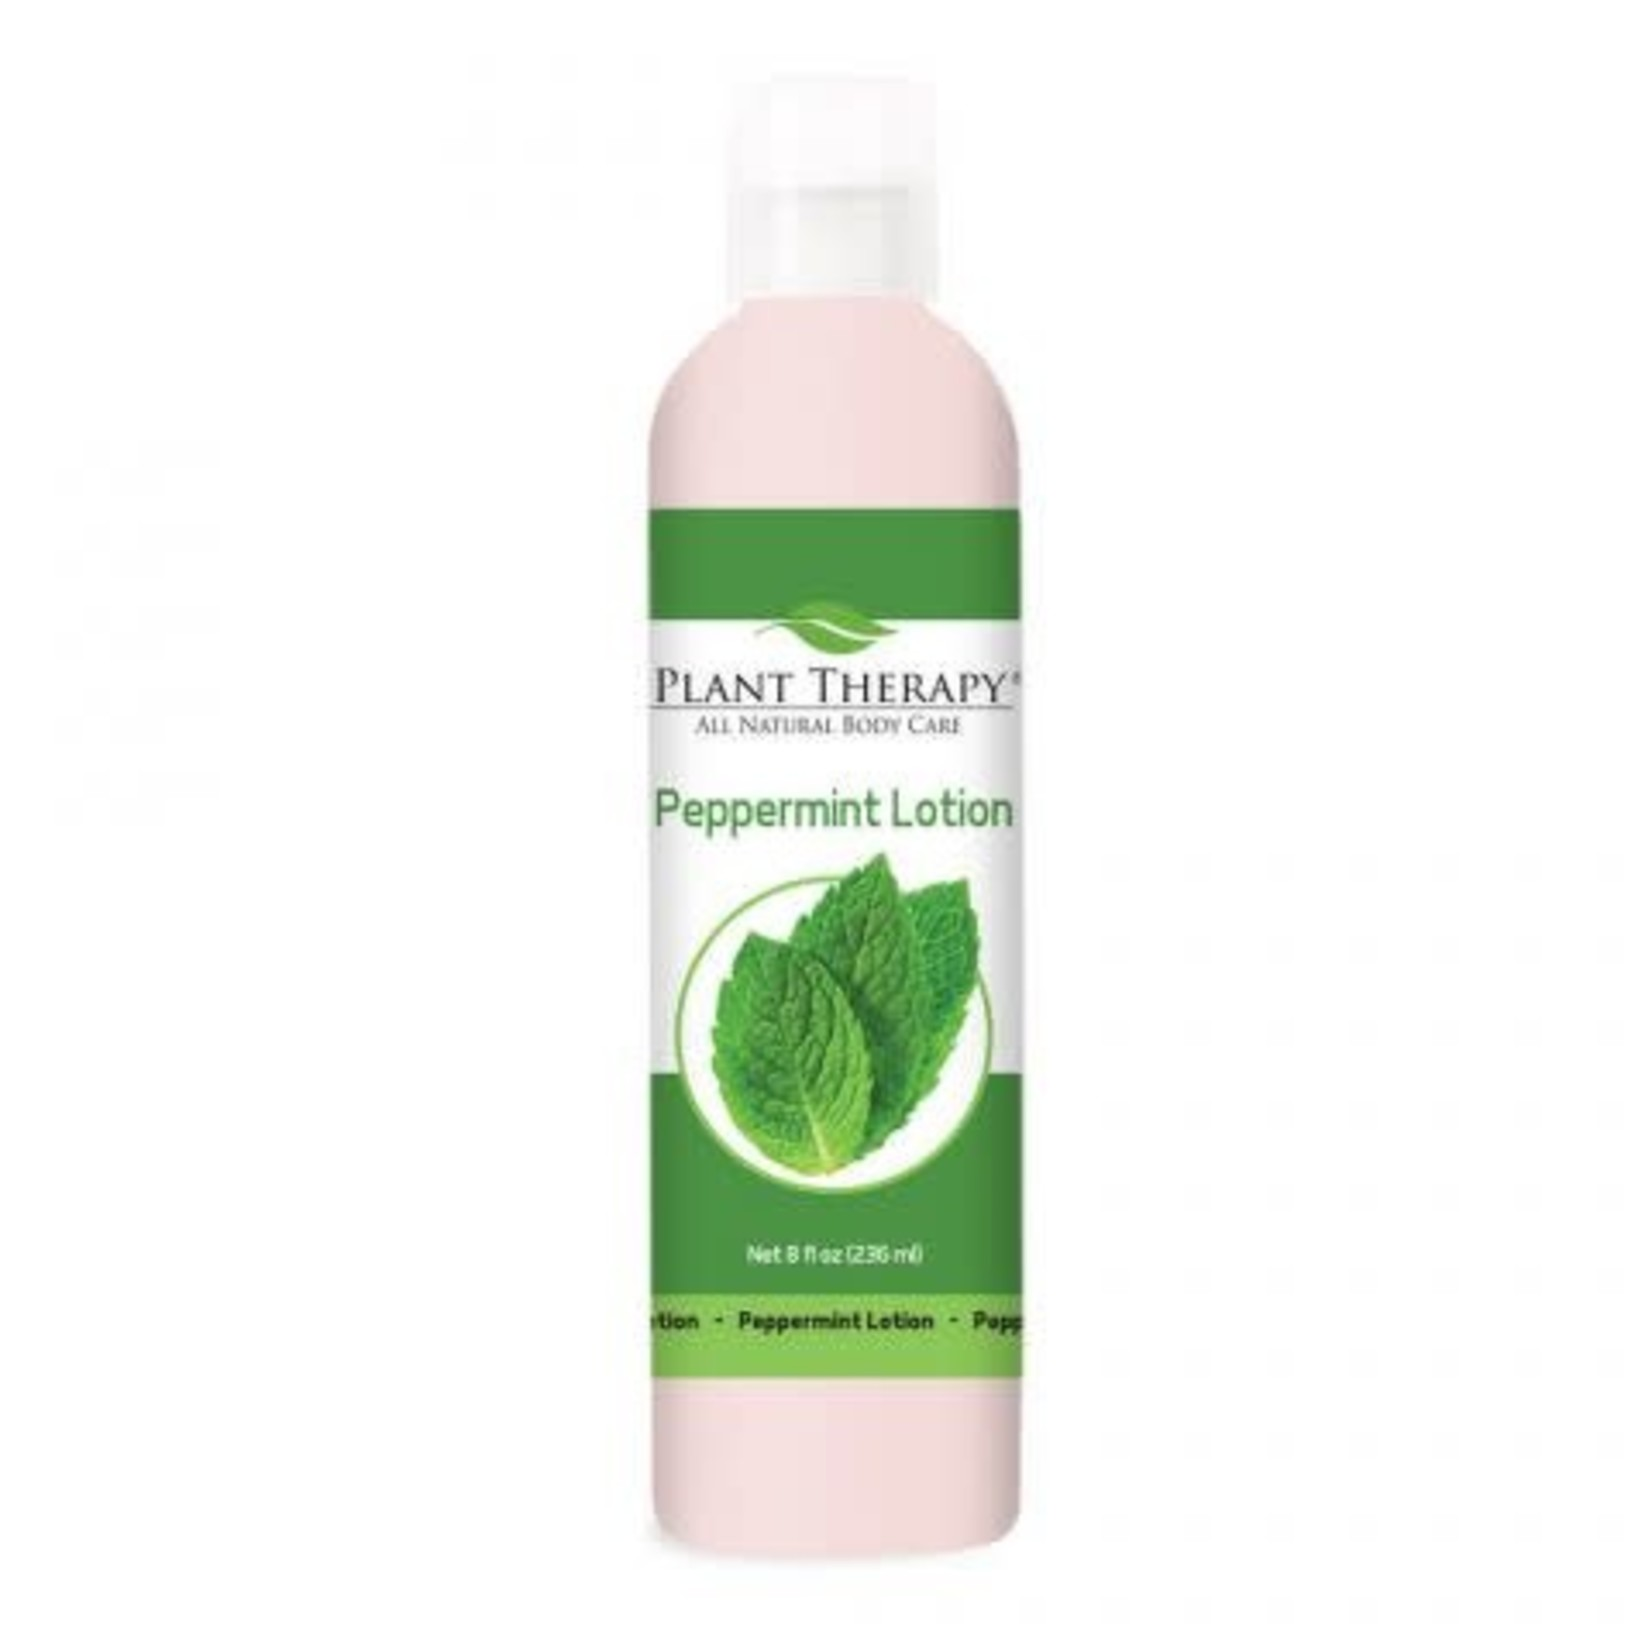 Plant Therapy PT Peppermint Lotion 8oz